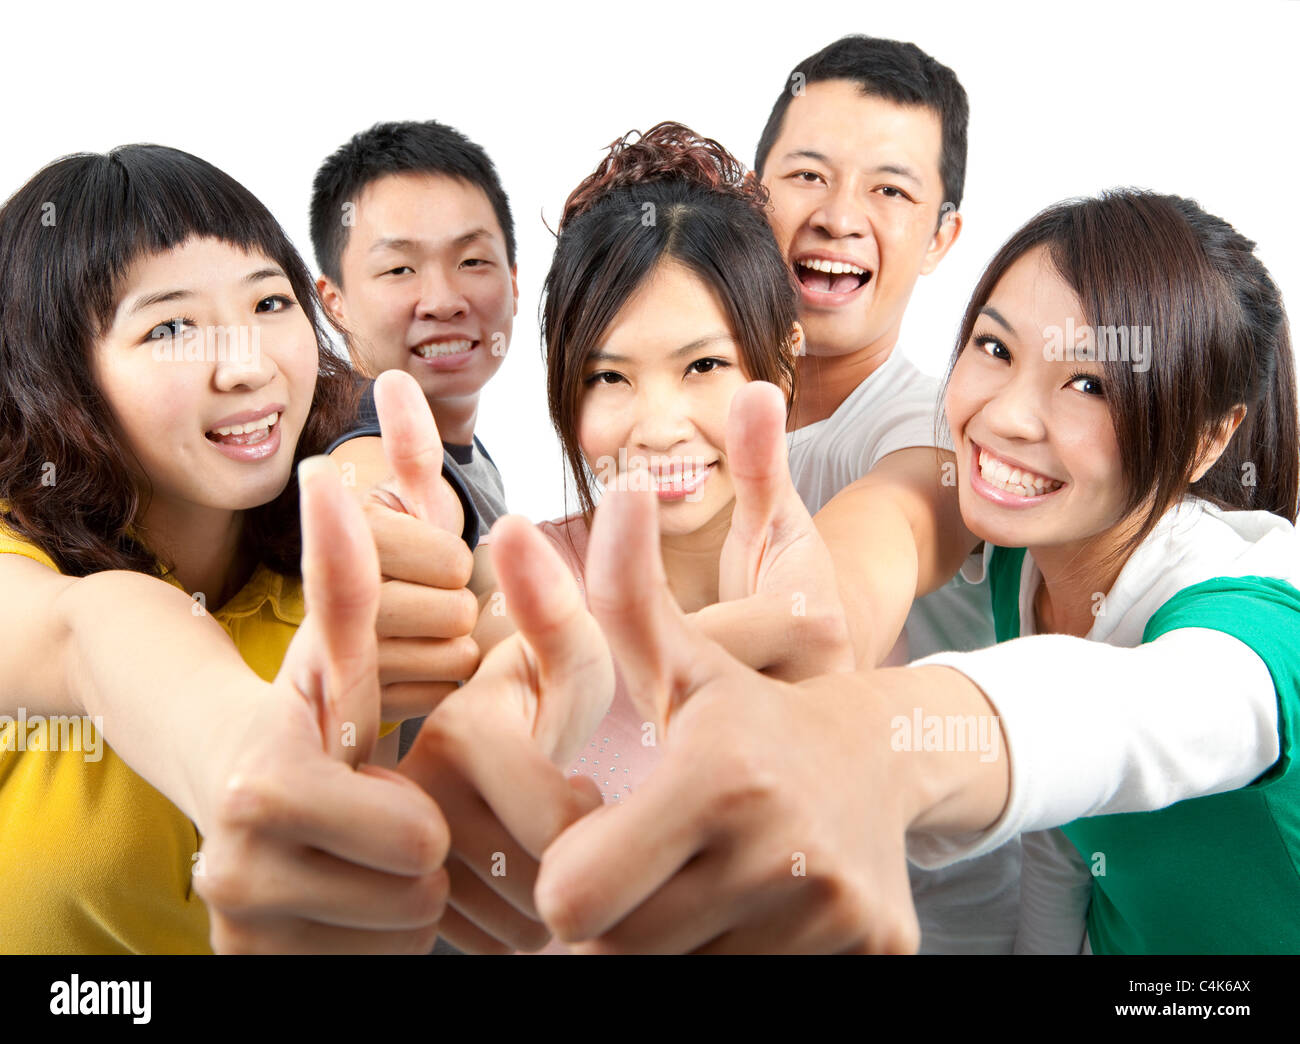 Asian Thumbs Pictures 120